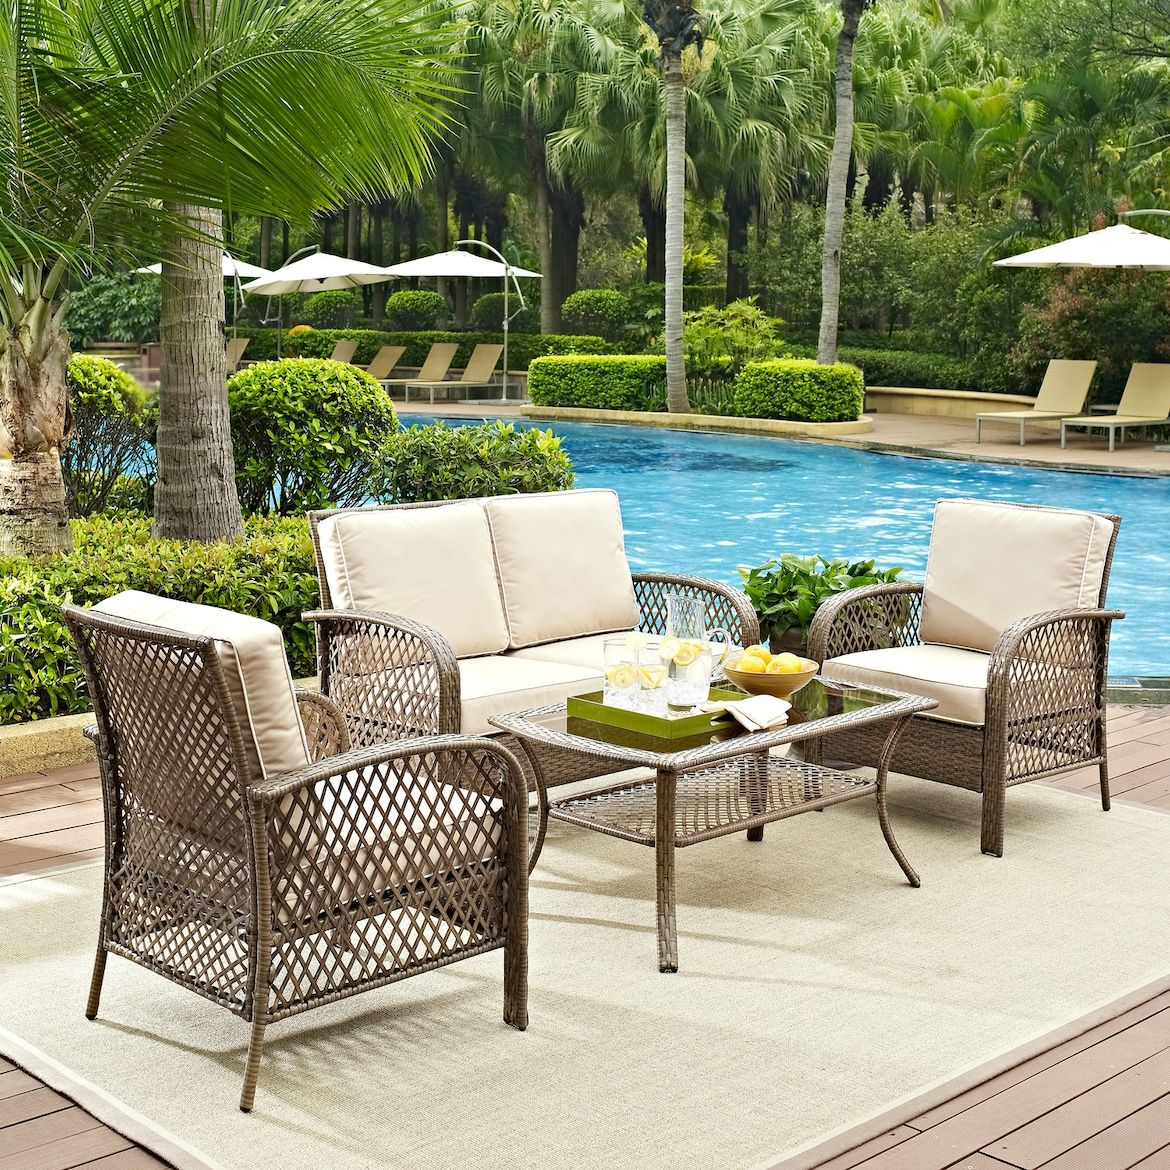 Zuma Outdoor Loveseat 2 Chairs And Coffee Table Set American Signature Furniture With Images Outdoor Wicker Seating Patio Seating Sets Patio Seating